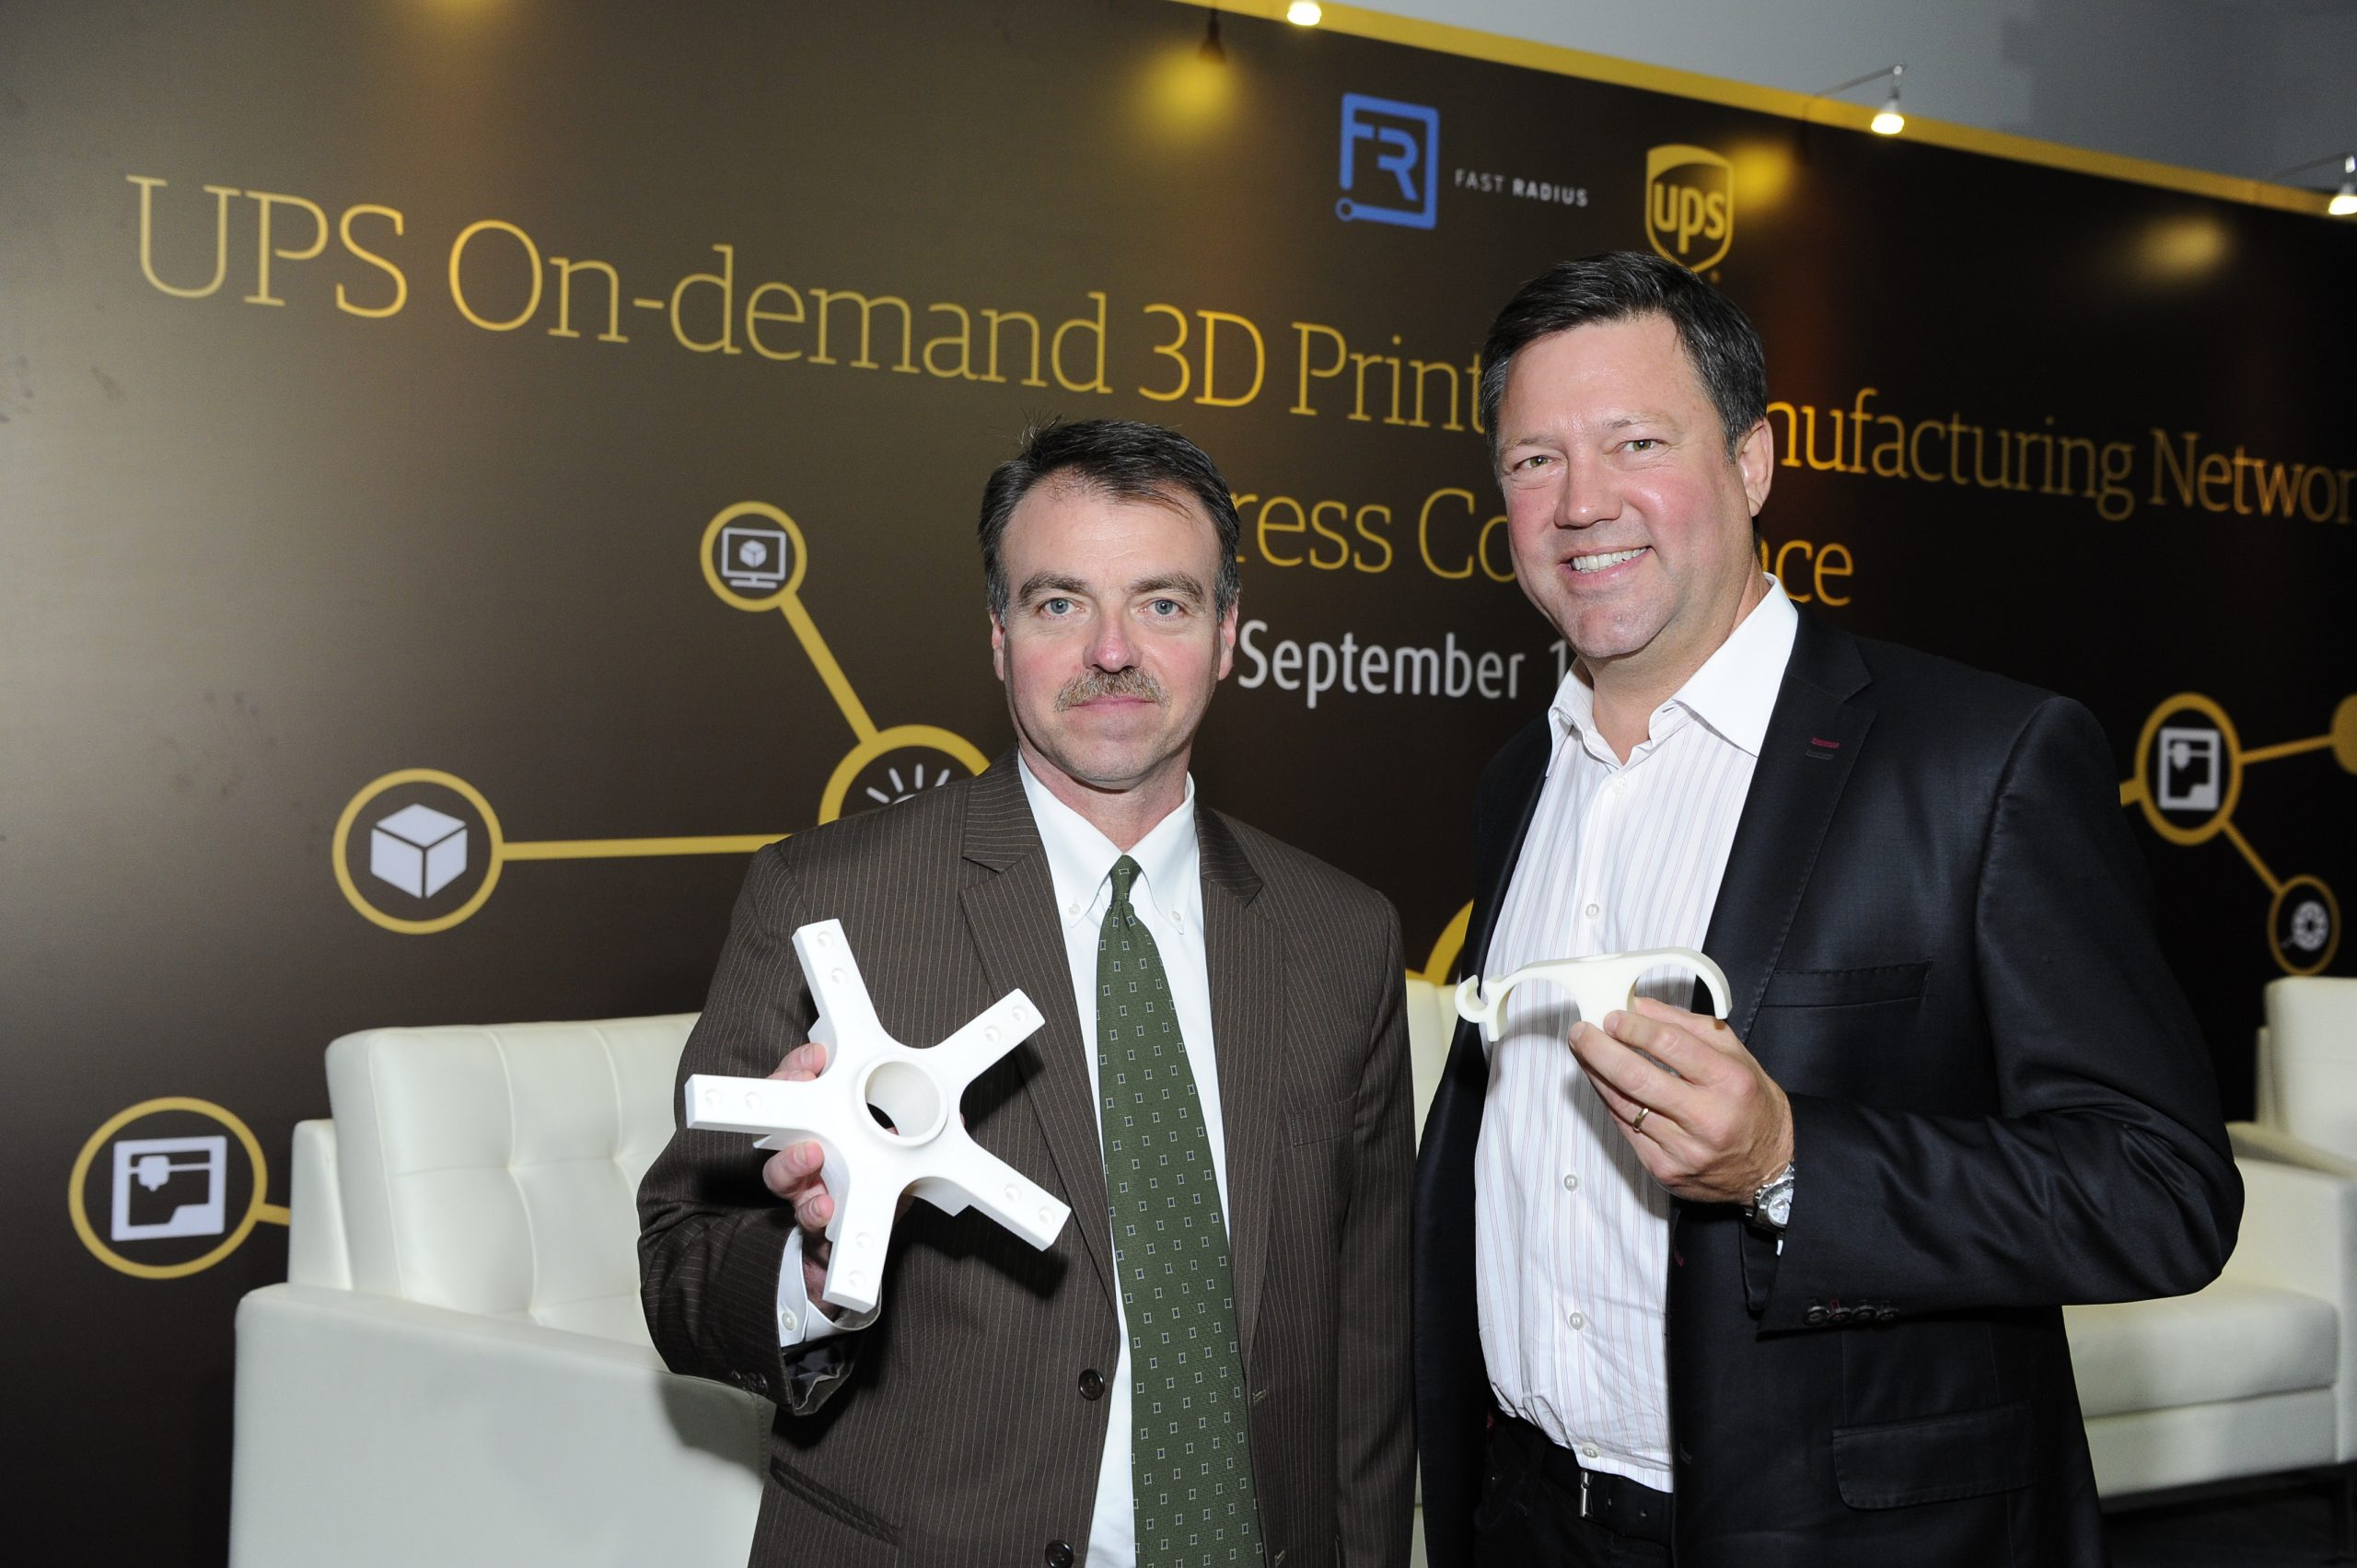 UPS and Fast Radius to open 3D printing centre in Singapore